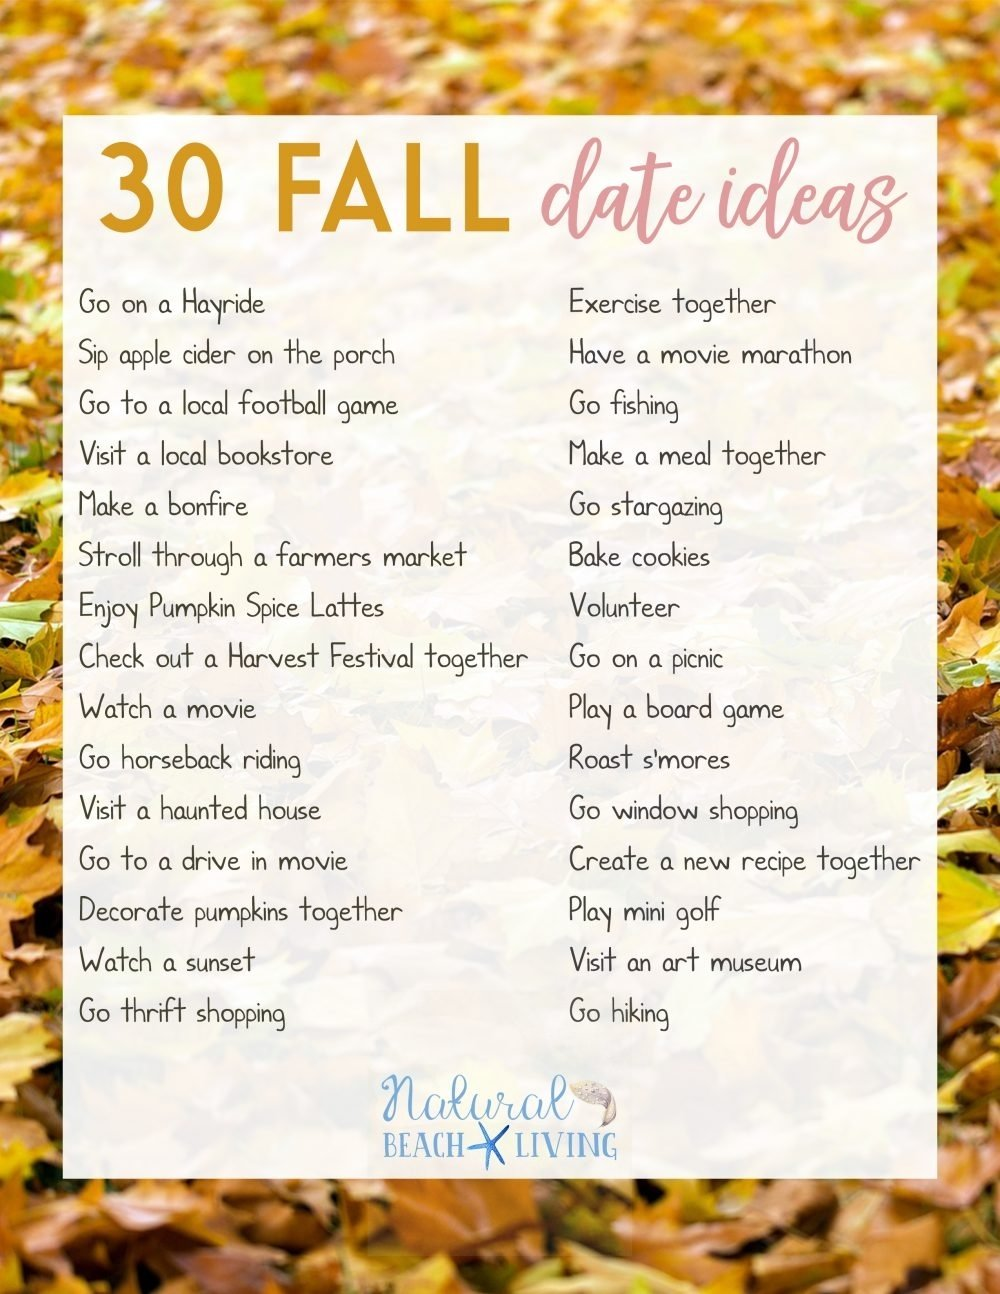 10 Cute Cheap Date Ideas For Married Couples fun date night ideas for fall natural beach living 14